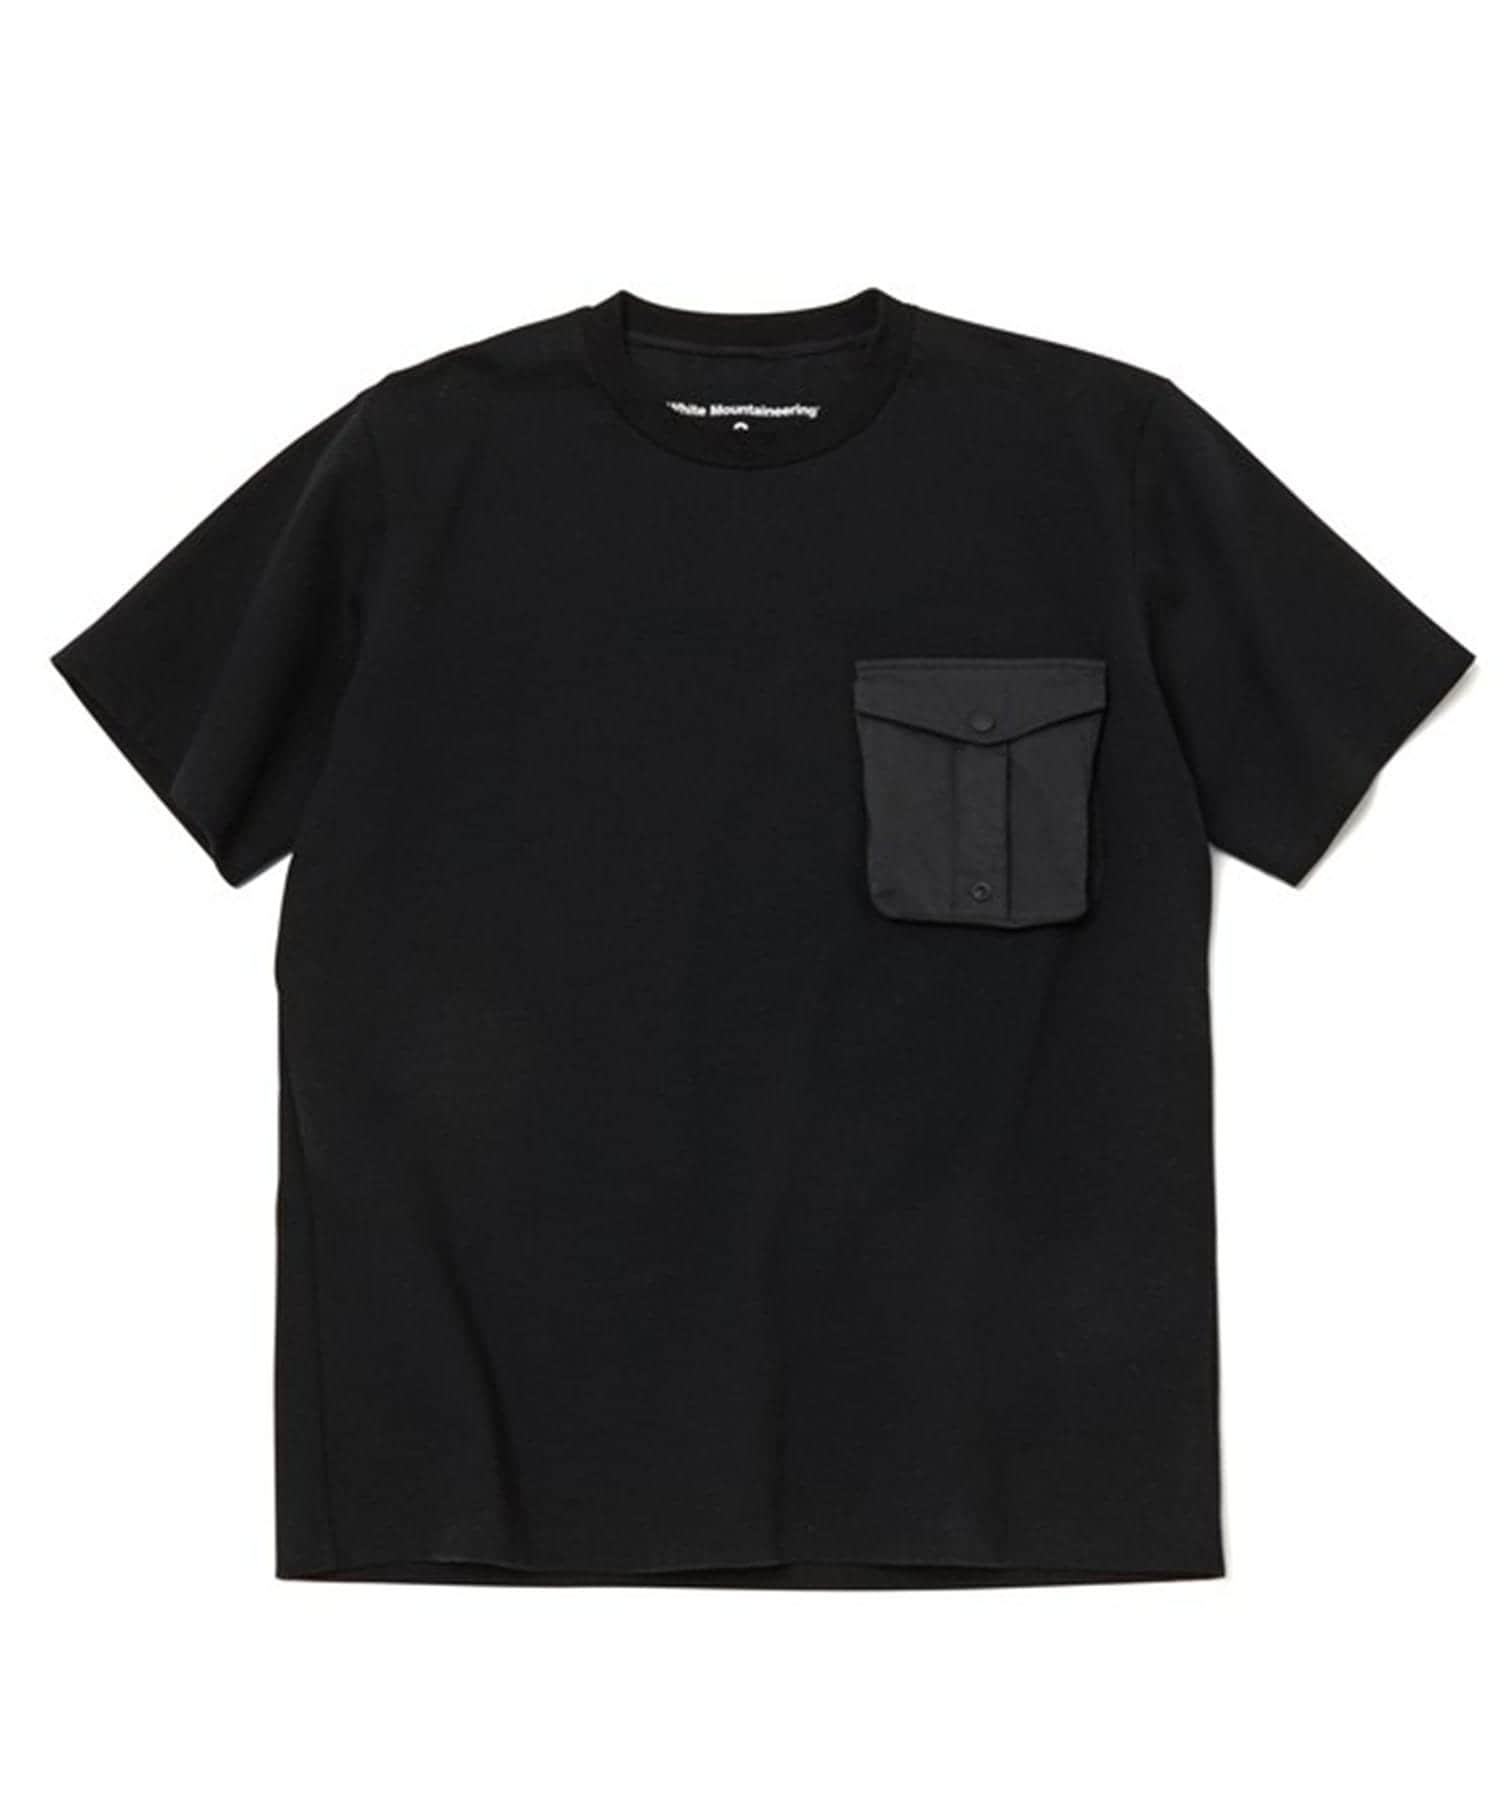 HUNTING POCKET T-SHIRT White Mountaineering